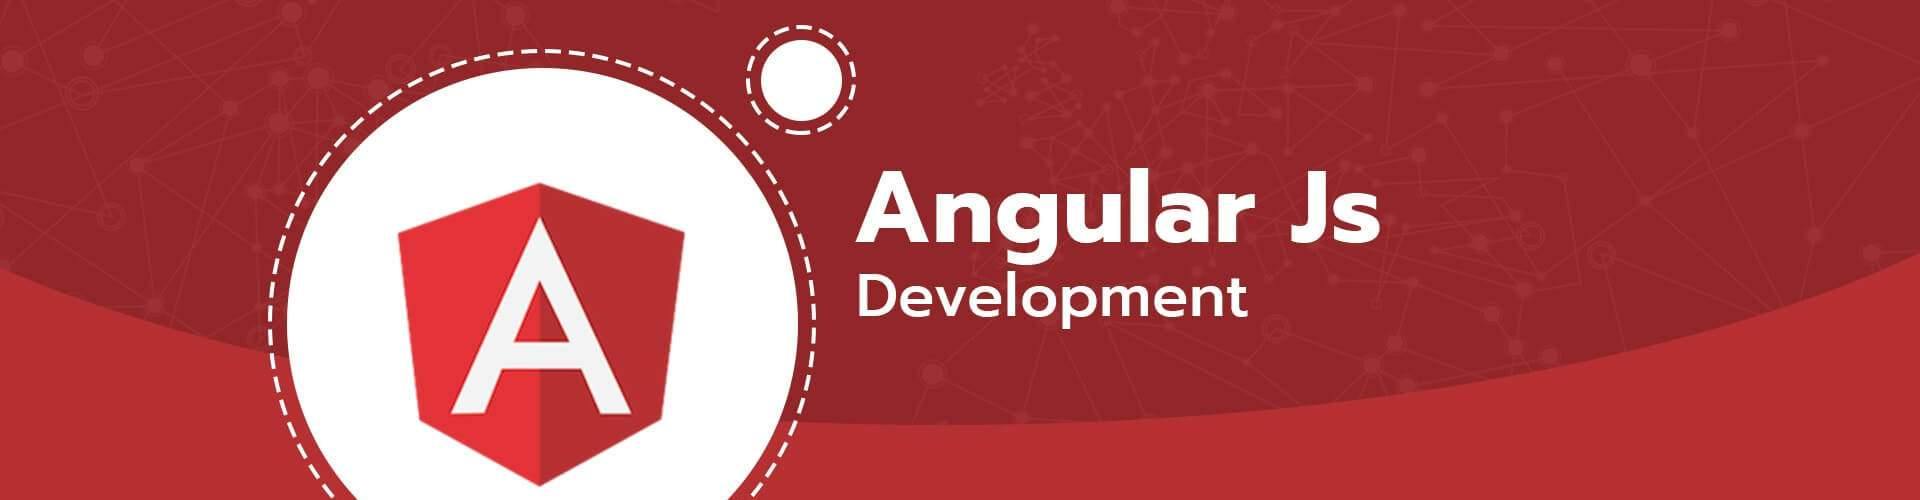 AngularJS Development Delhi